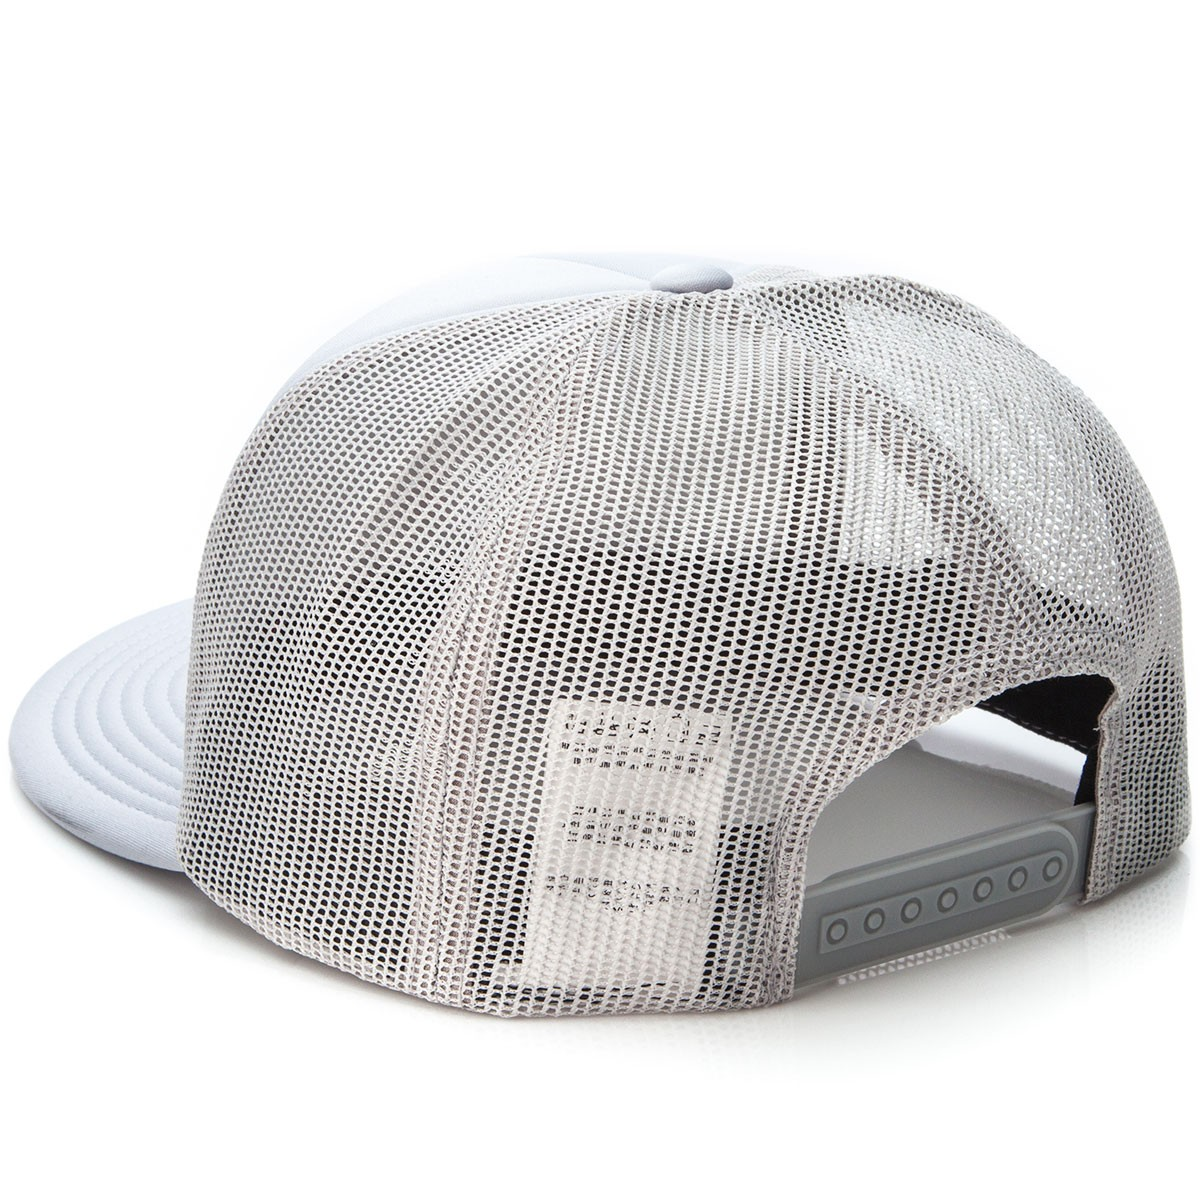 volcom chopped cheese hat cool grey